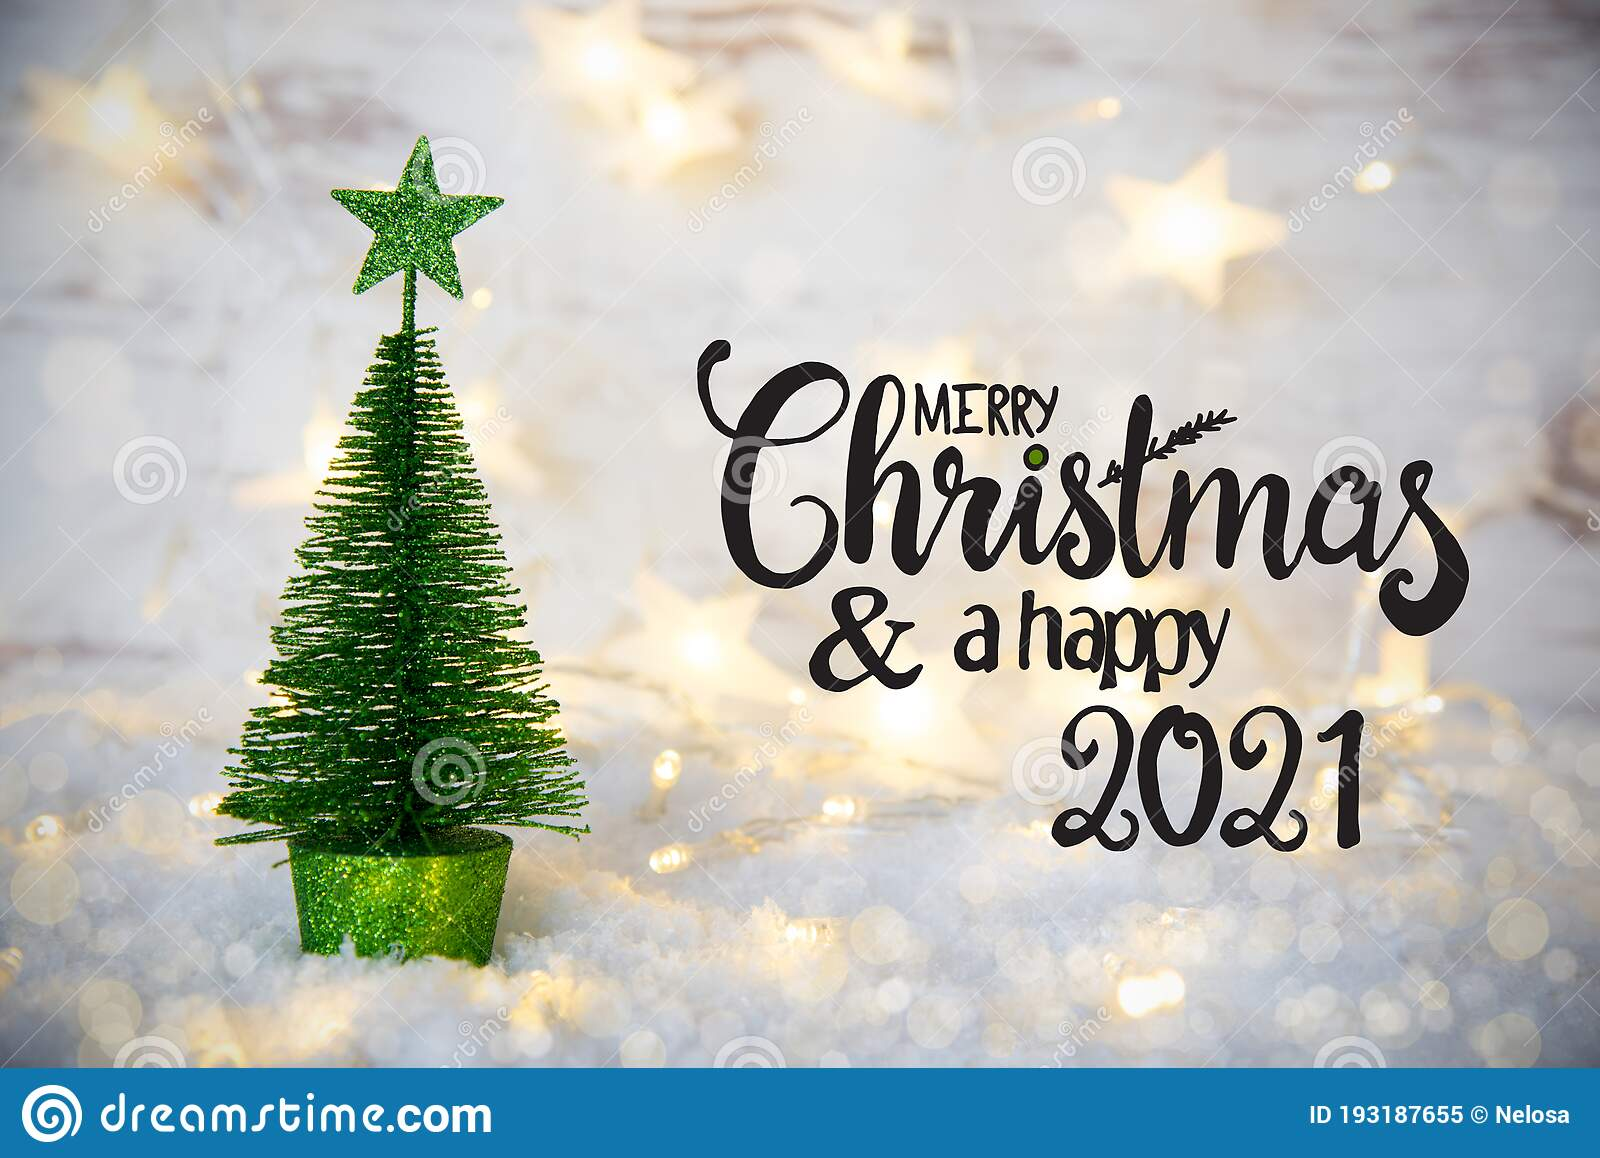 Free Christmas Pictures 2021 Green Christmas Tree Lights Star Snow Merry Christmas And A Happy 2021 Stock Image Image Of Winter White 193187655